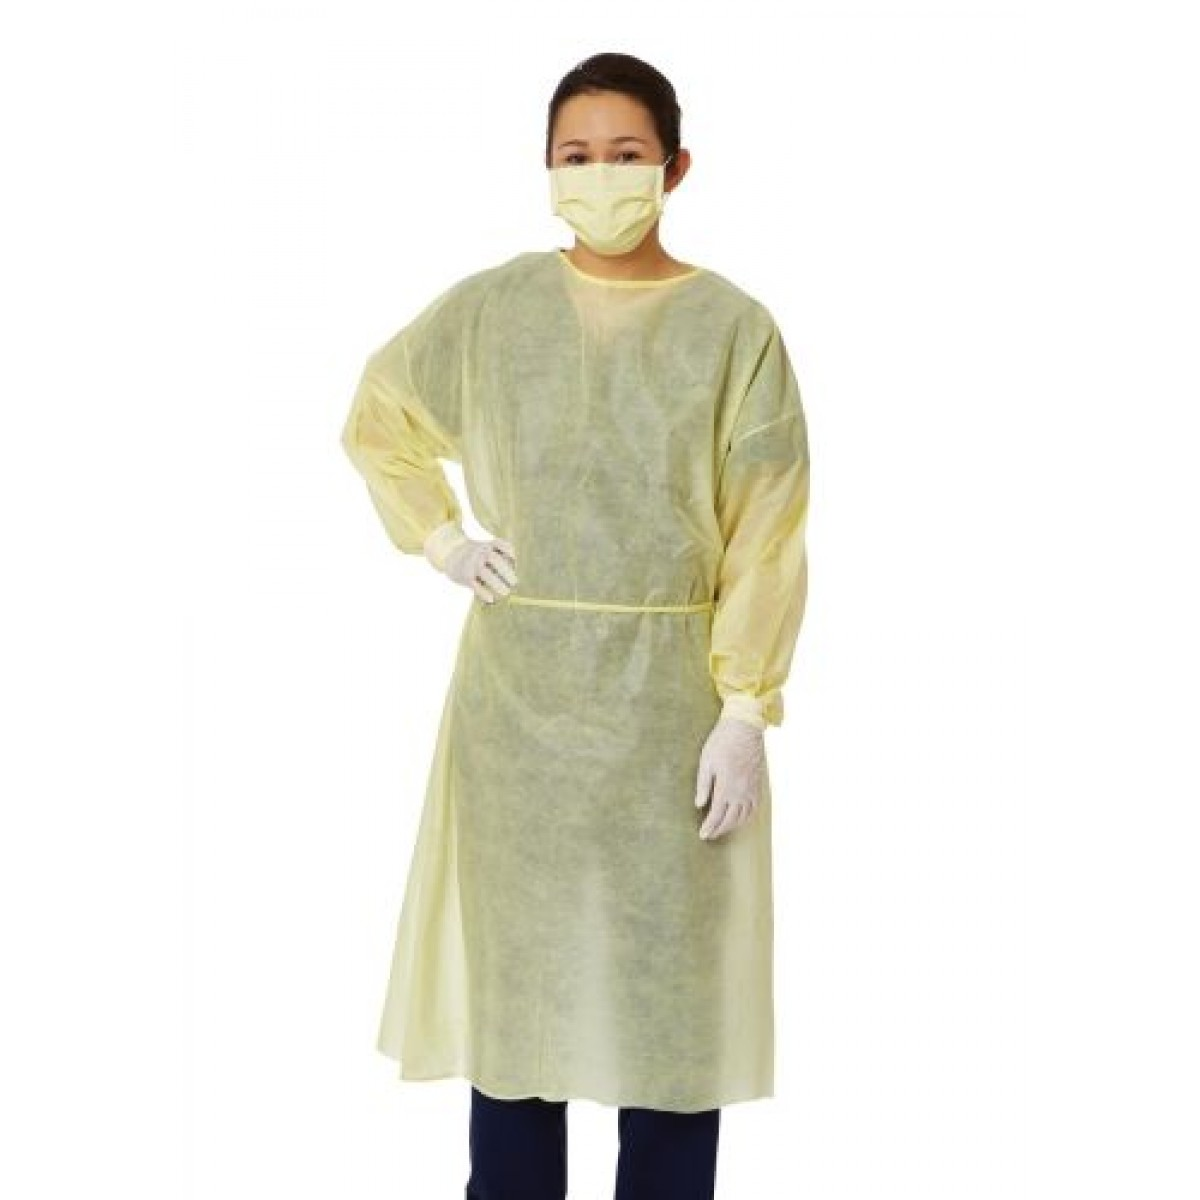 Medium Weight Multi-Ply Fluid Resistant Isolation Gown - NON27SMS2